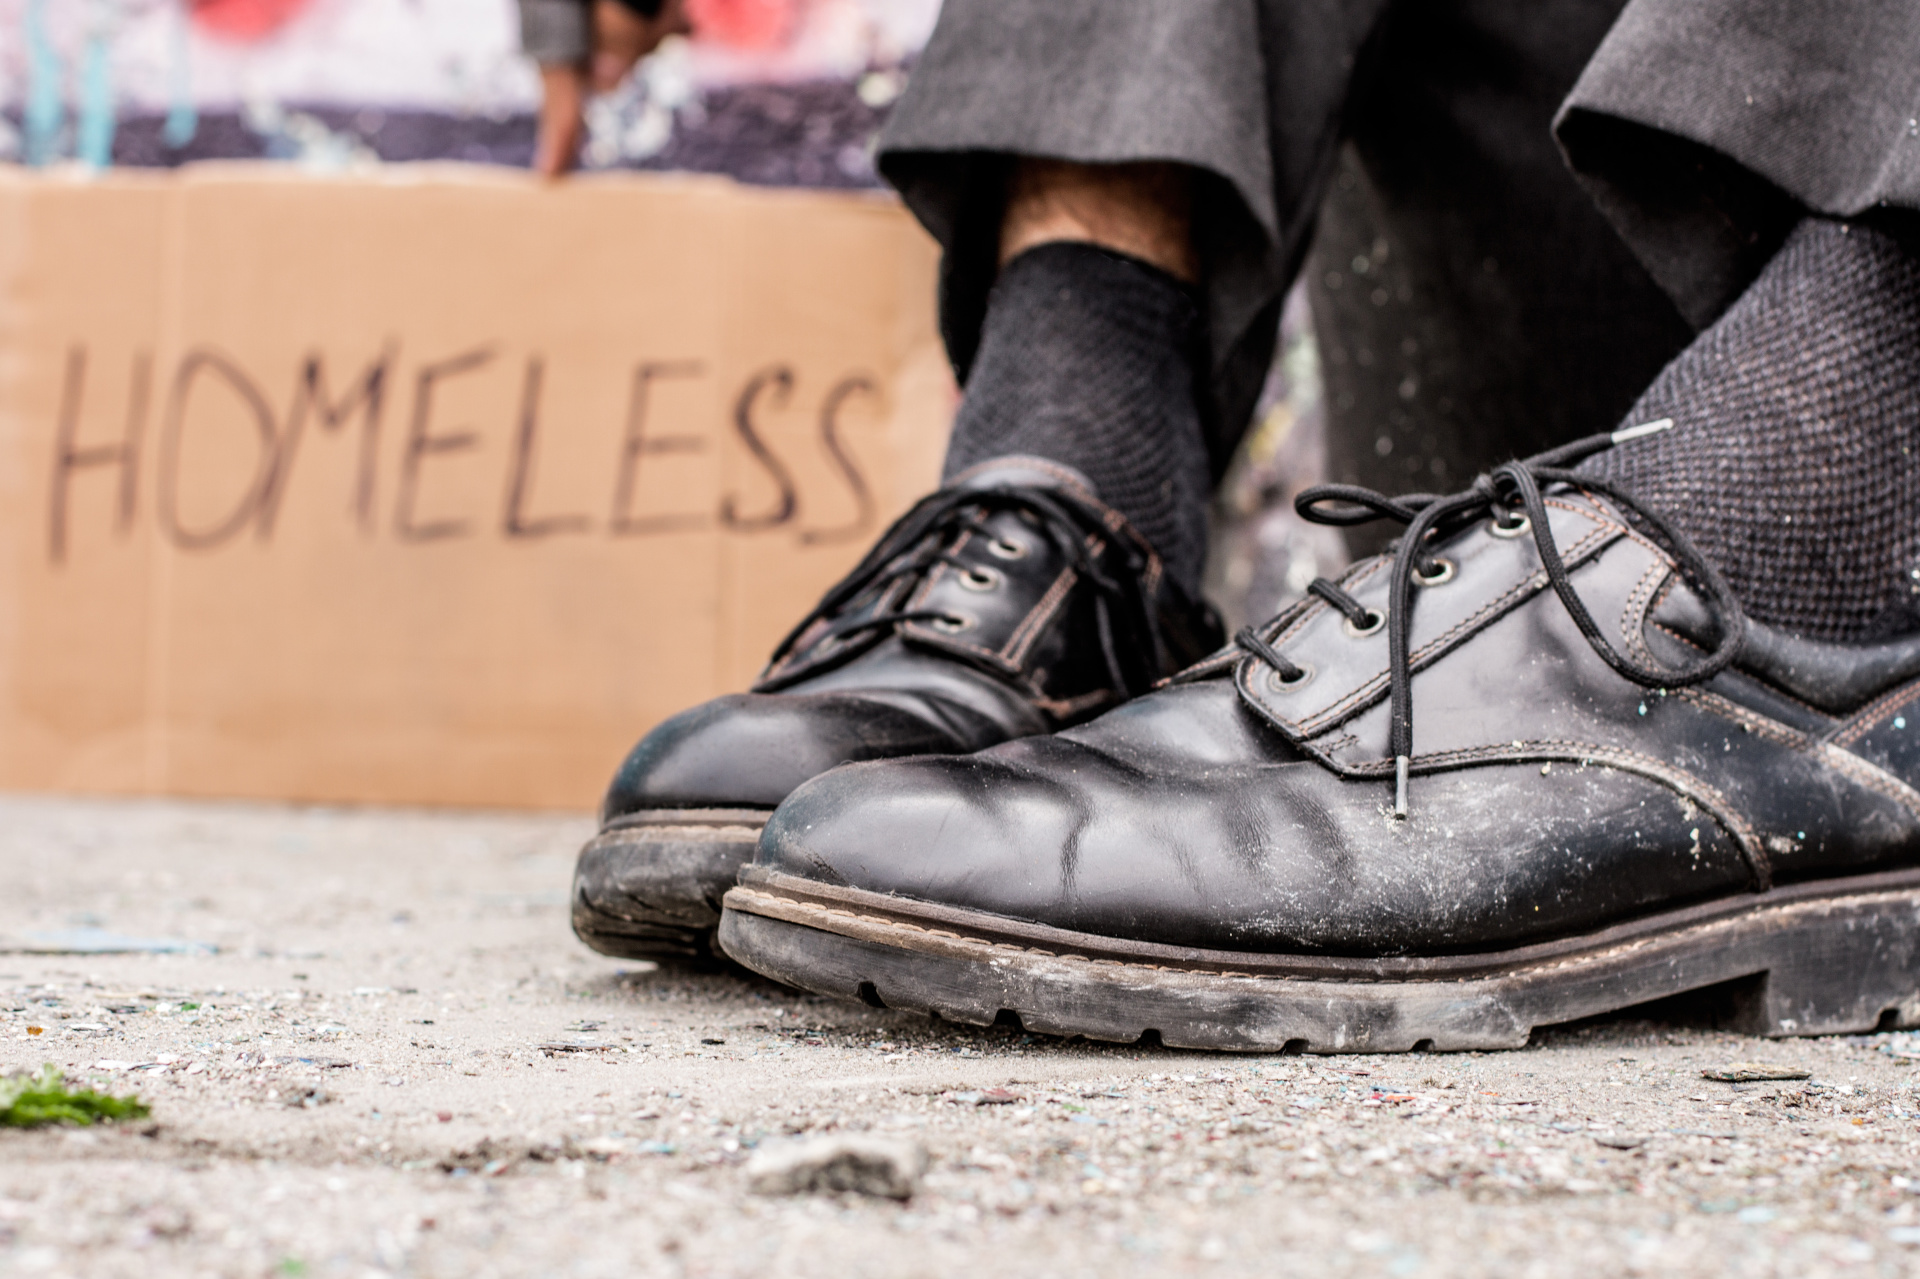 NMP Homeless - SUPPORT